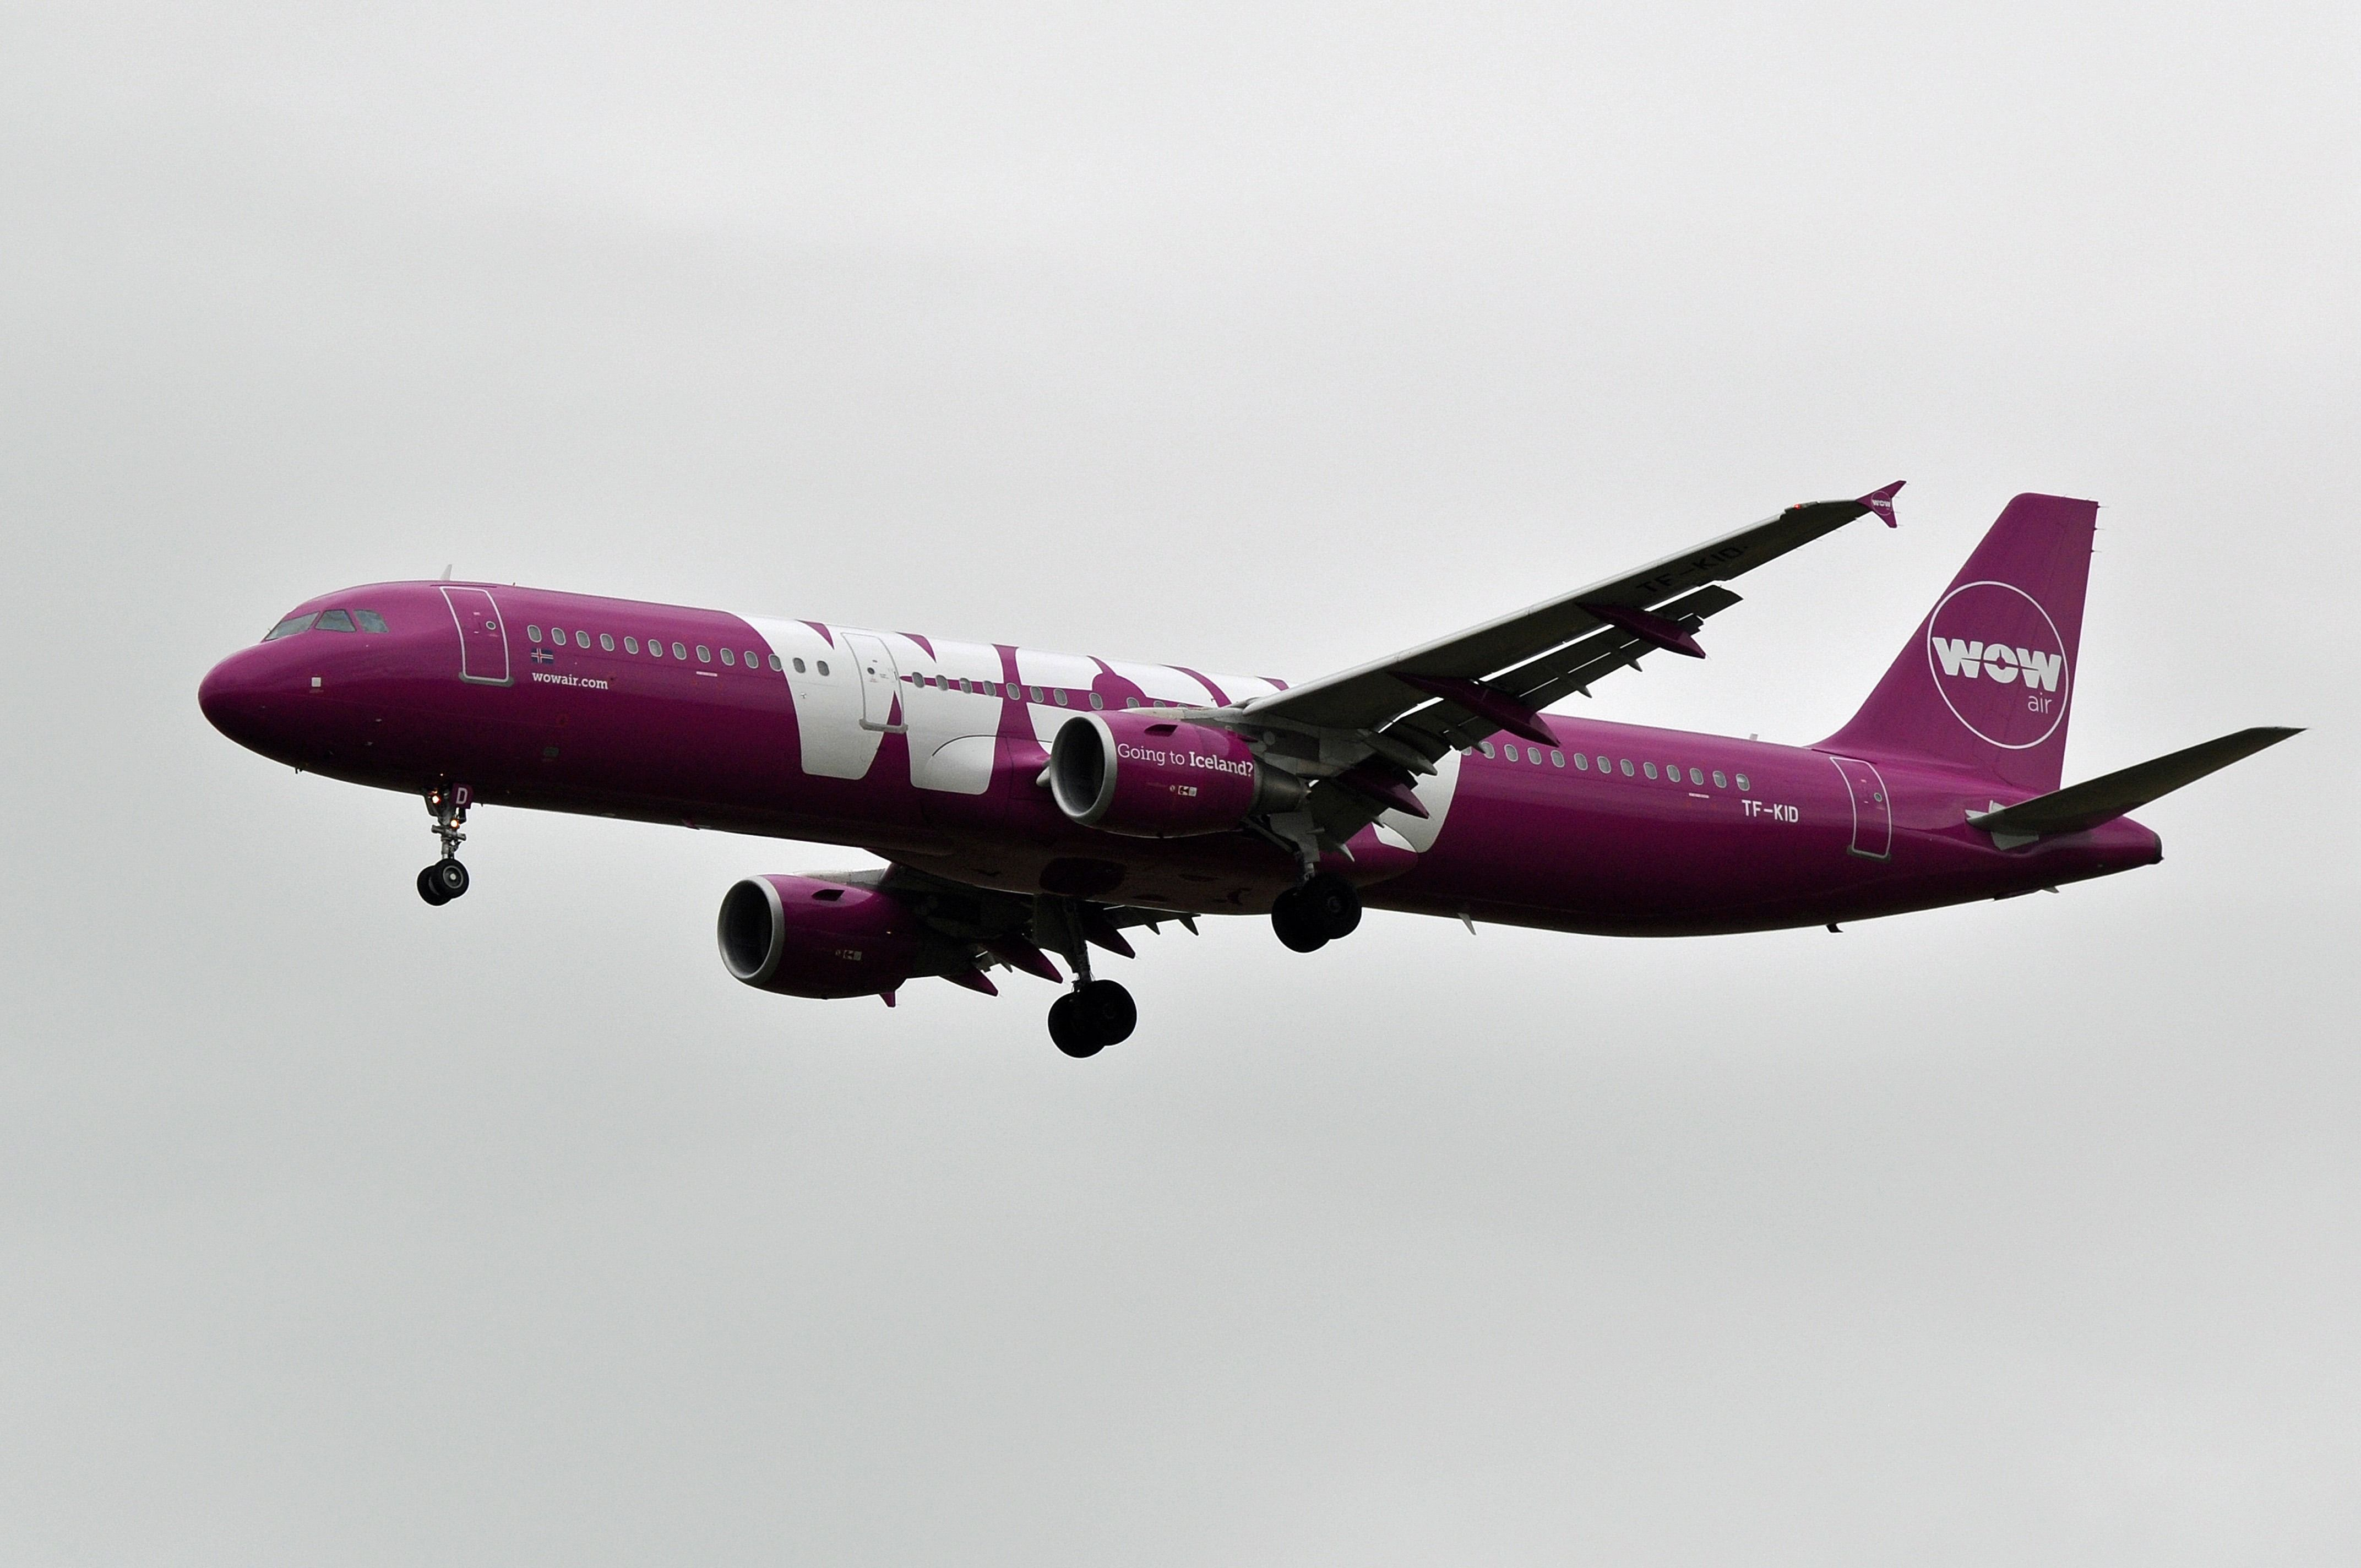 Oh, Wow: The low-cost airline WOW Air is offering flights from North America to Israel for as low as $149.